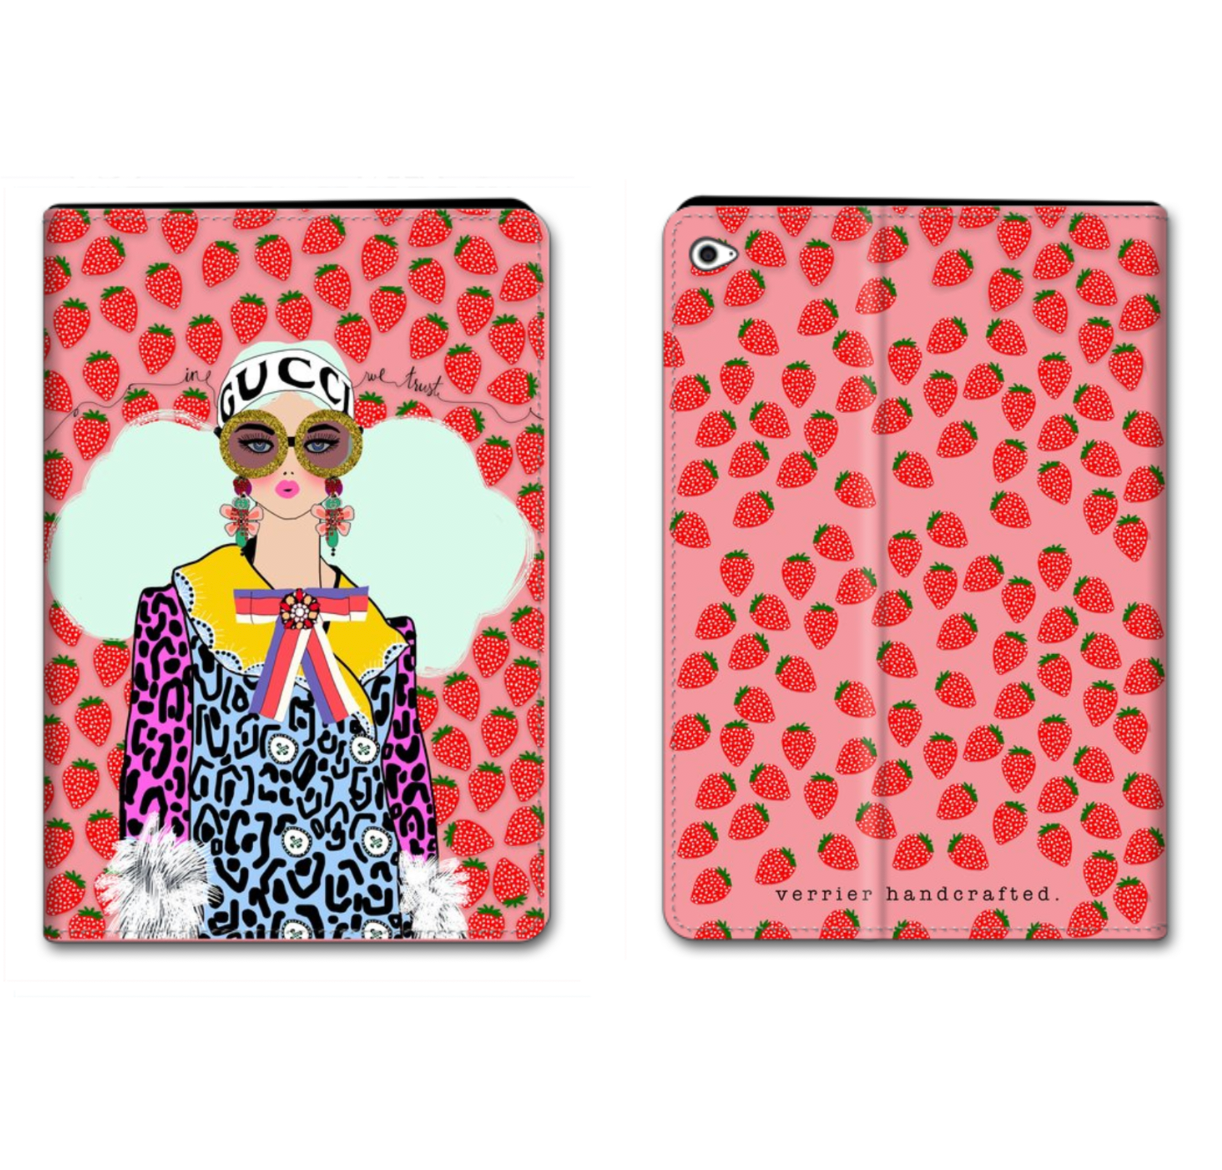 In Gucci We Trust iPad Case